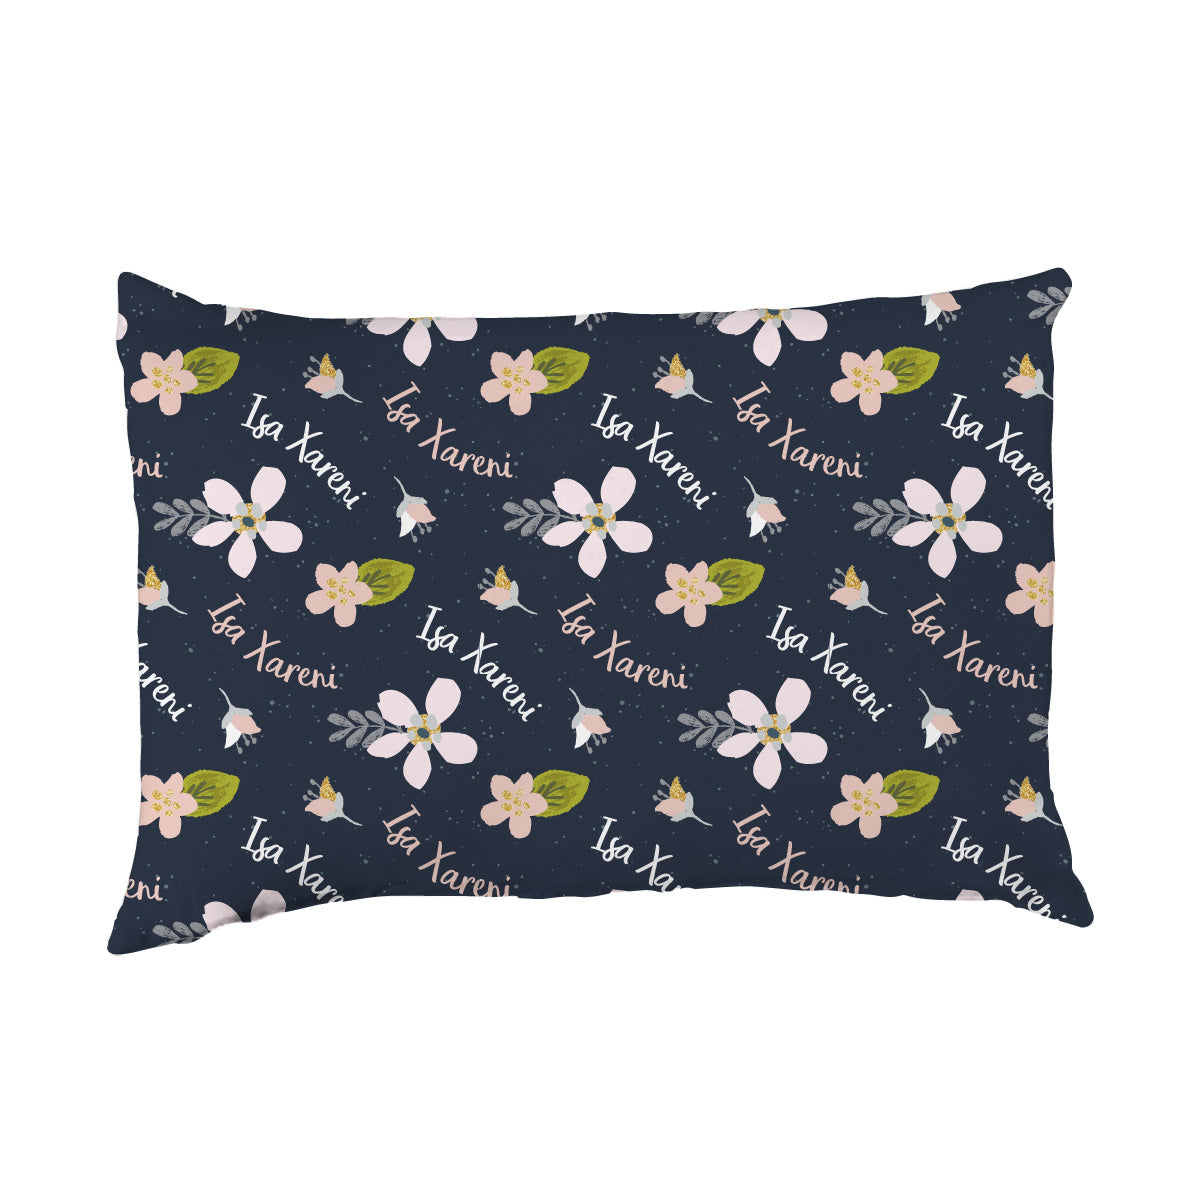 Isa's Dainty Daisy | Big Kid Pillow Case